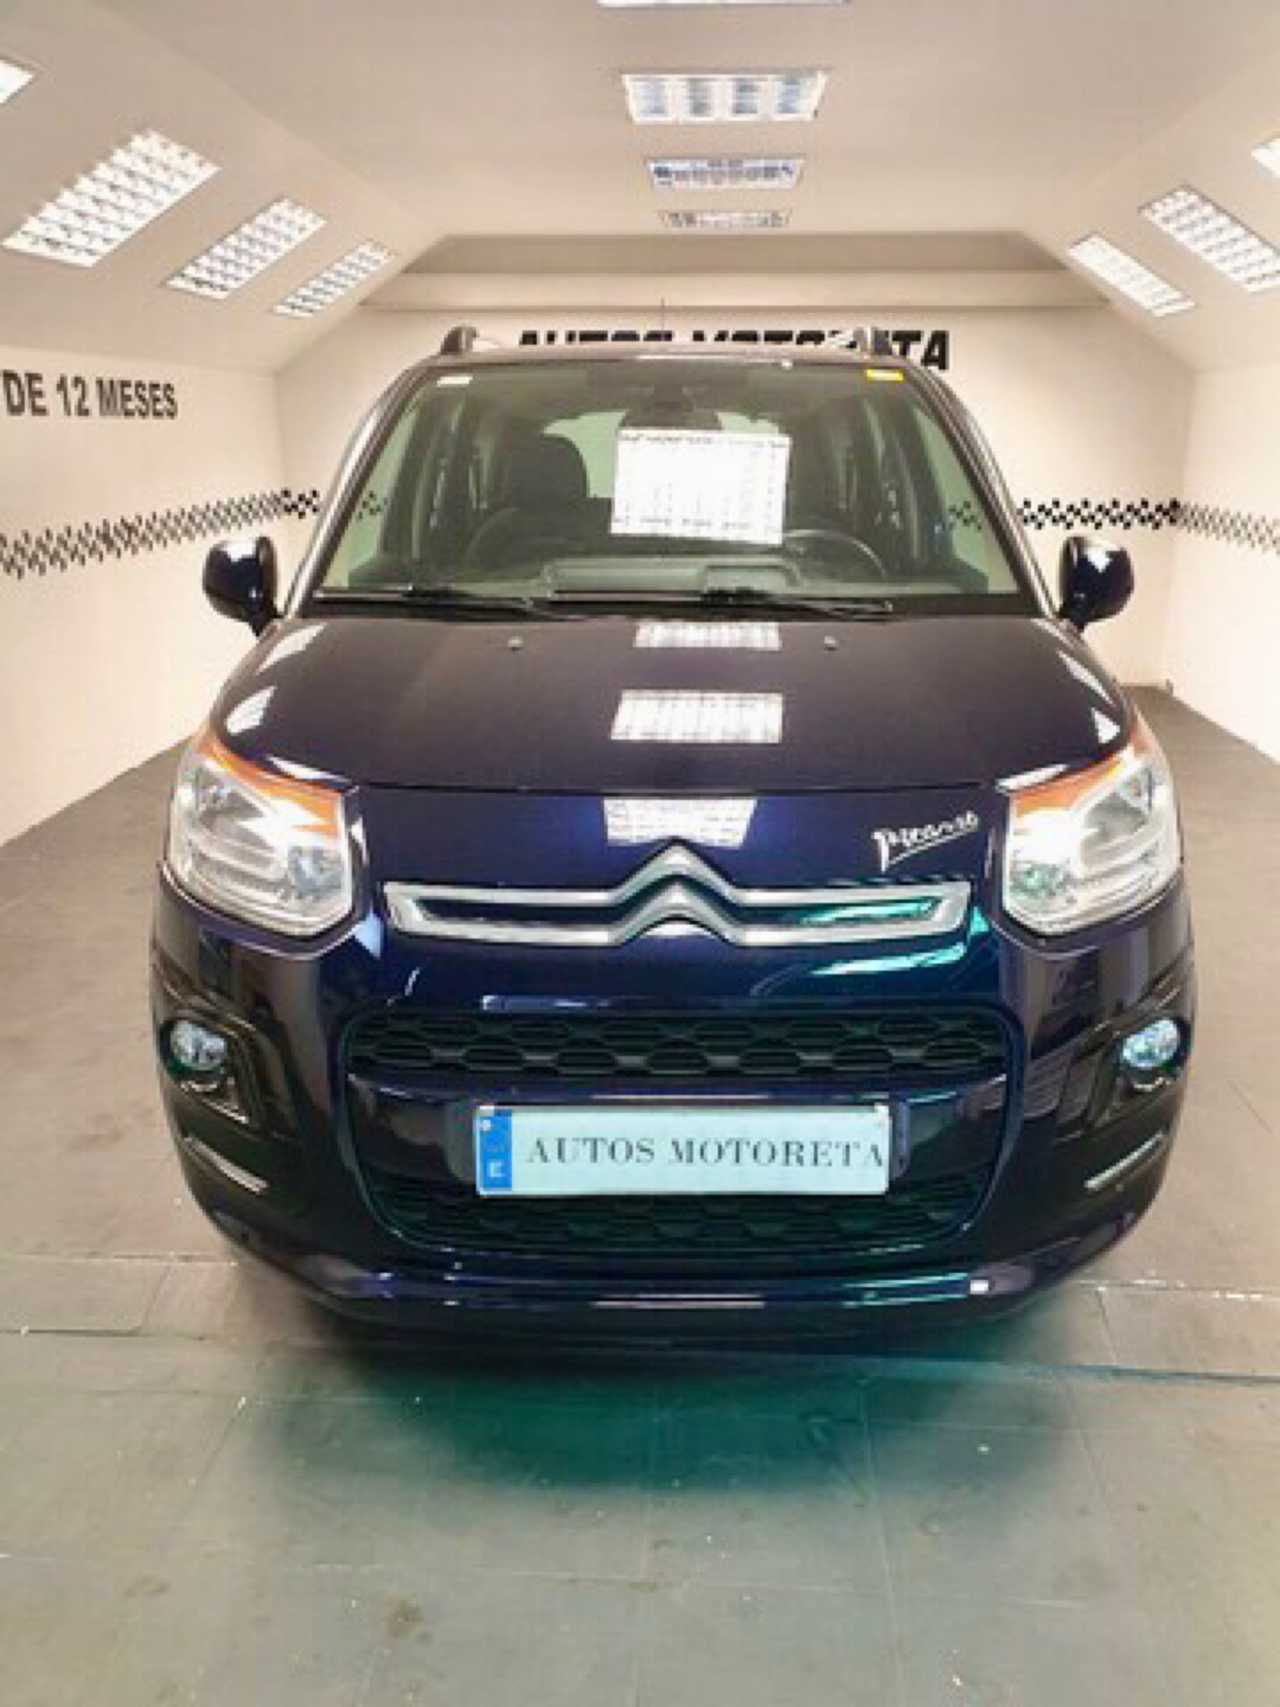 Citroën C3 Picasso 1.6 E-HDI 90CV SEDUCTION  - Foto 1